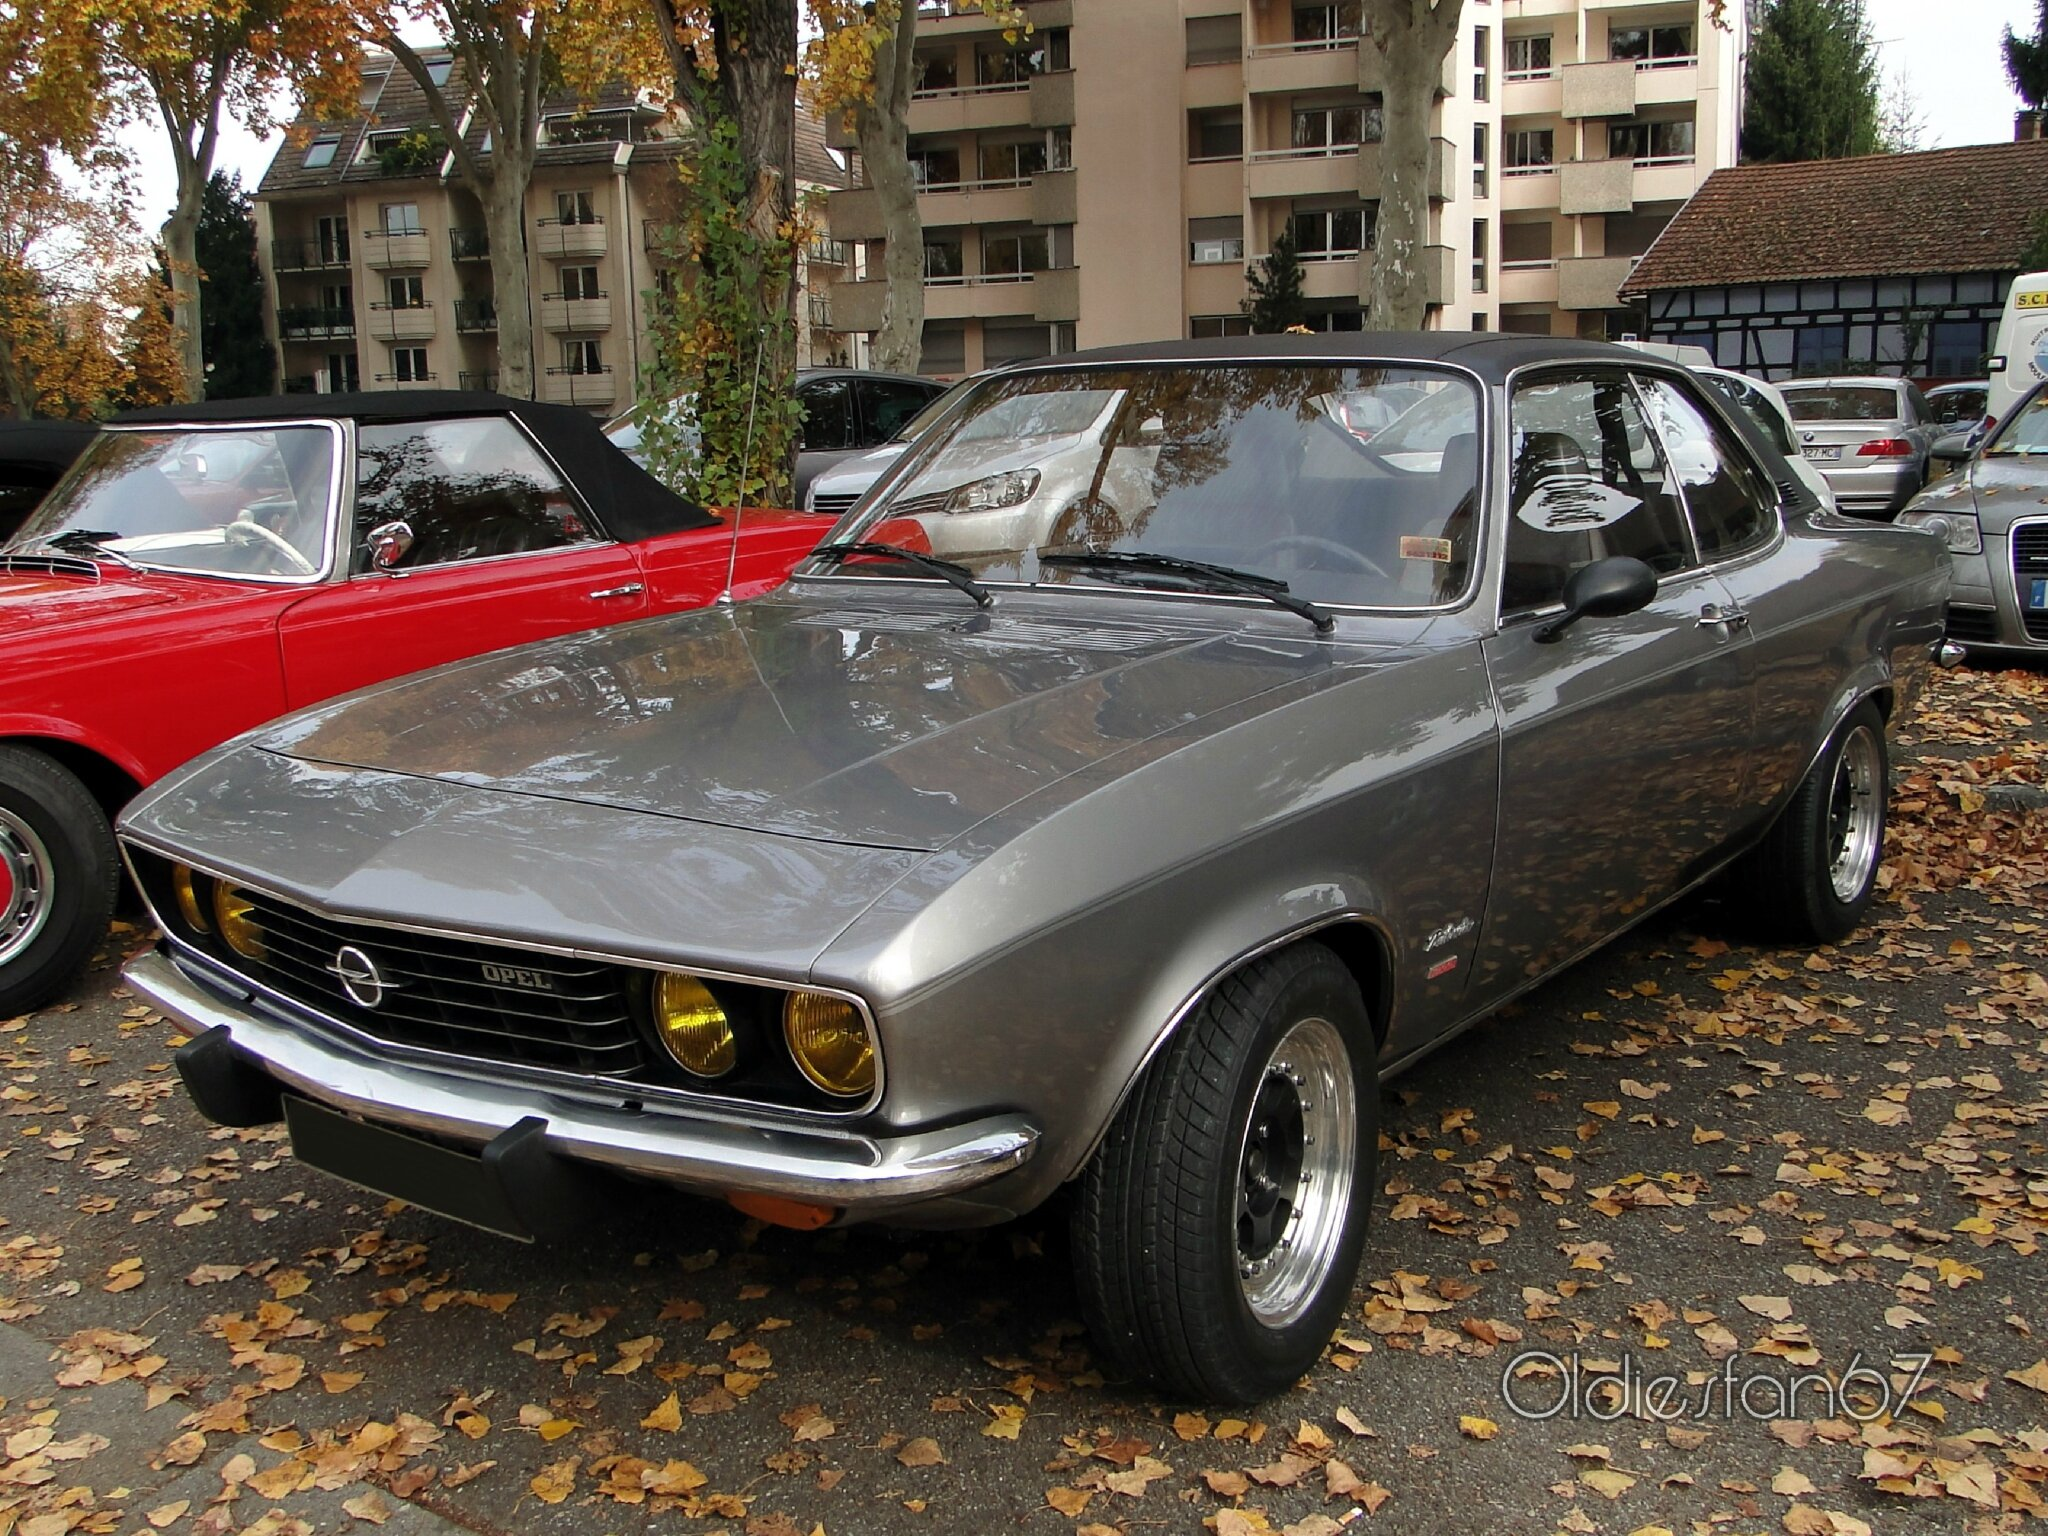 opel manta tous les messages sur opel manta oldiesfan67 mon blog auto. Black Bedroom Furniture Sets. Home Design Ideas